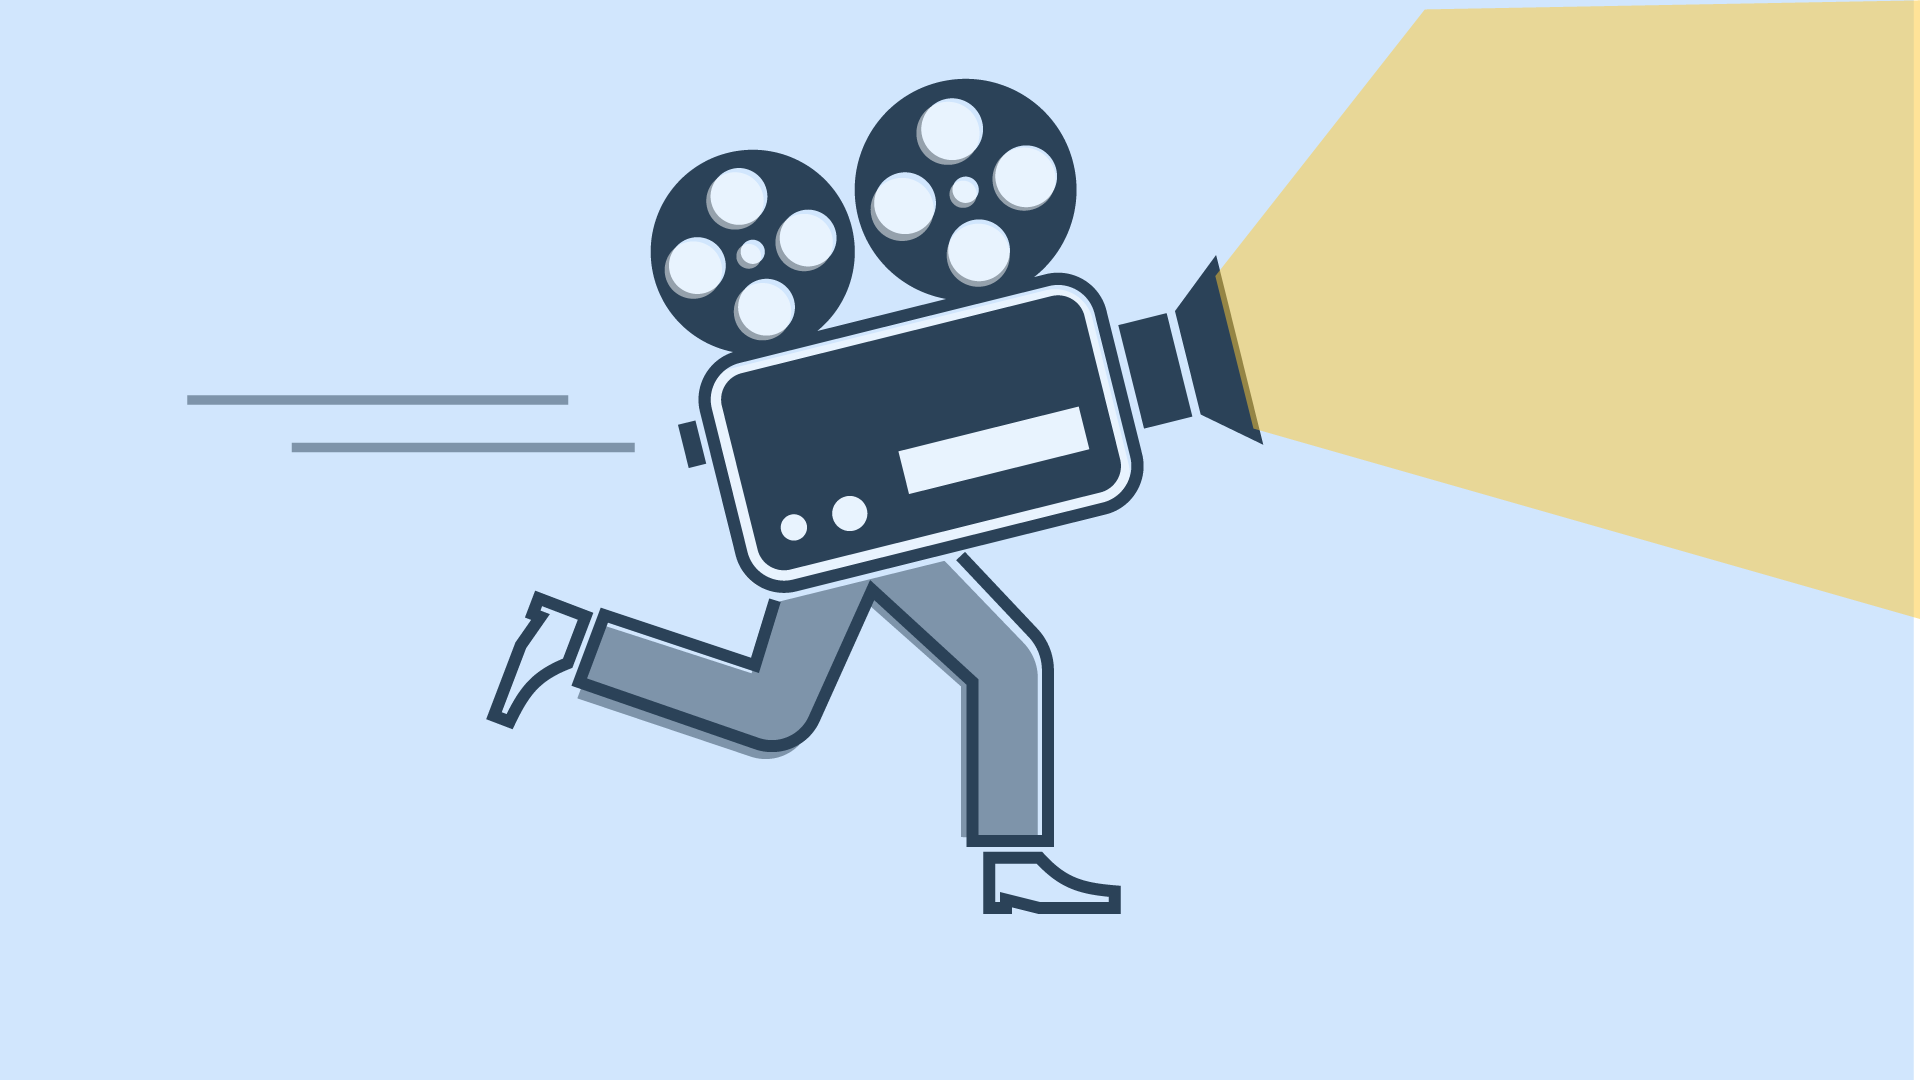 A film projector runs - on two human legs. Icon for ORANGE MOVING MOVIES, our moving image formats.